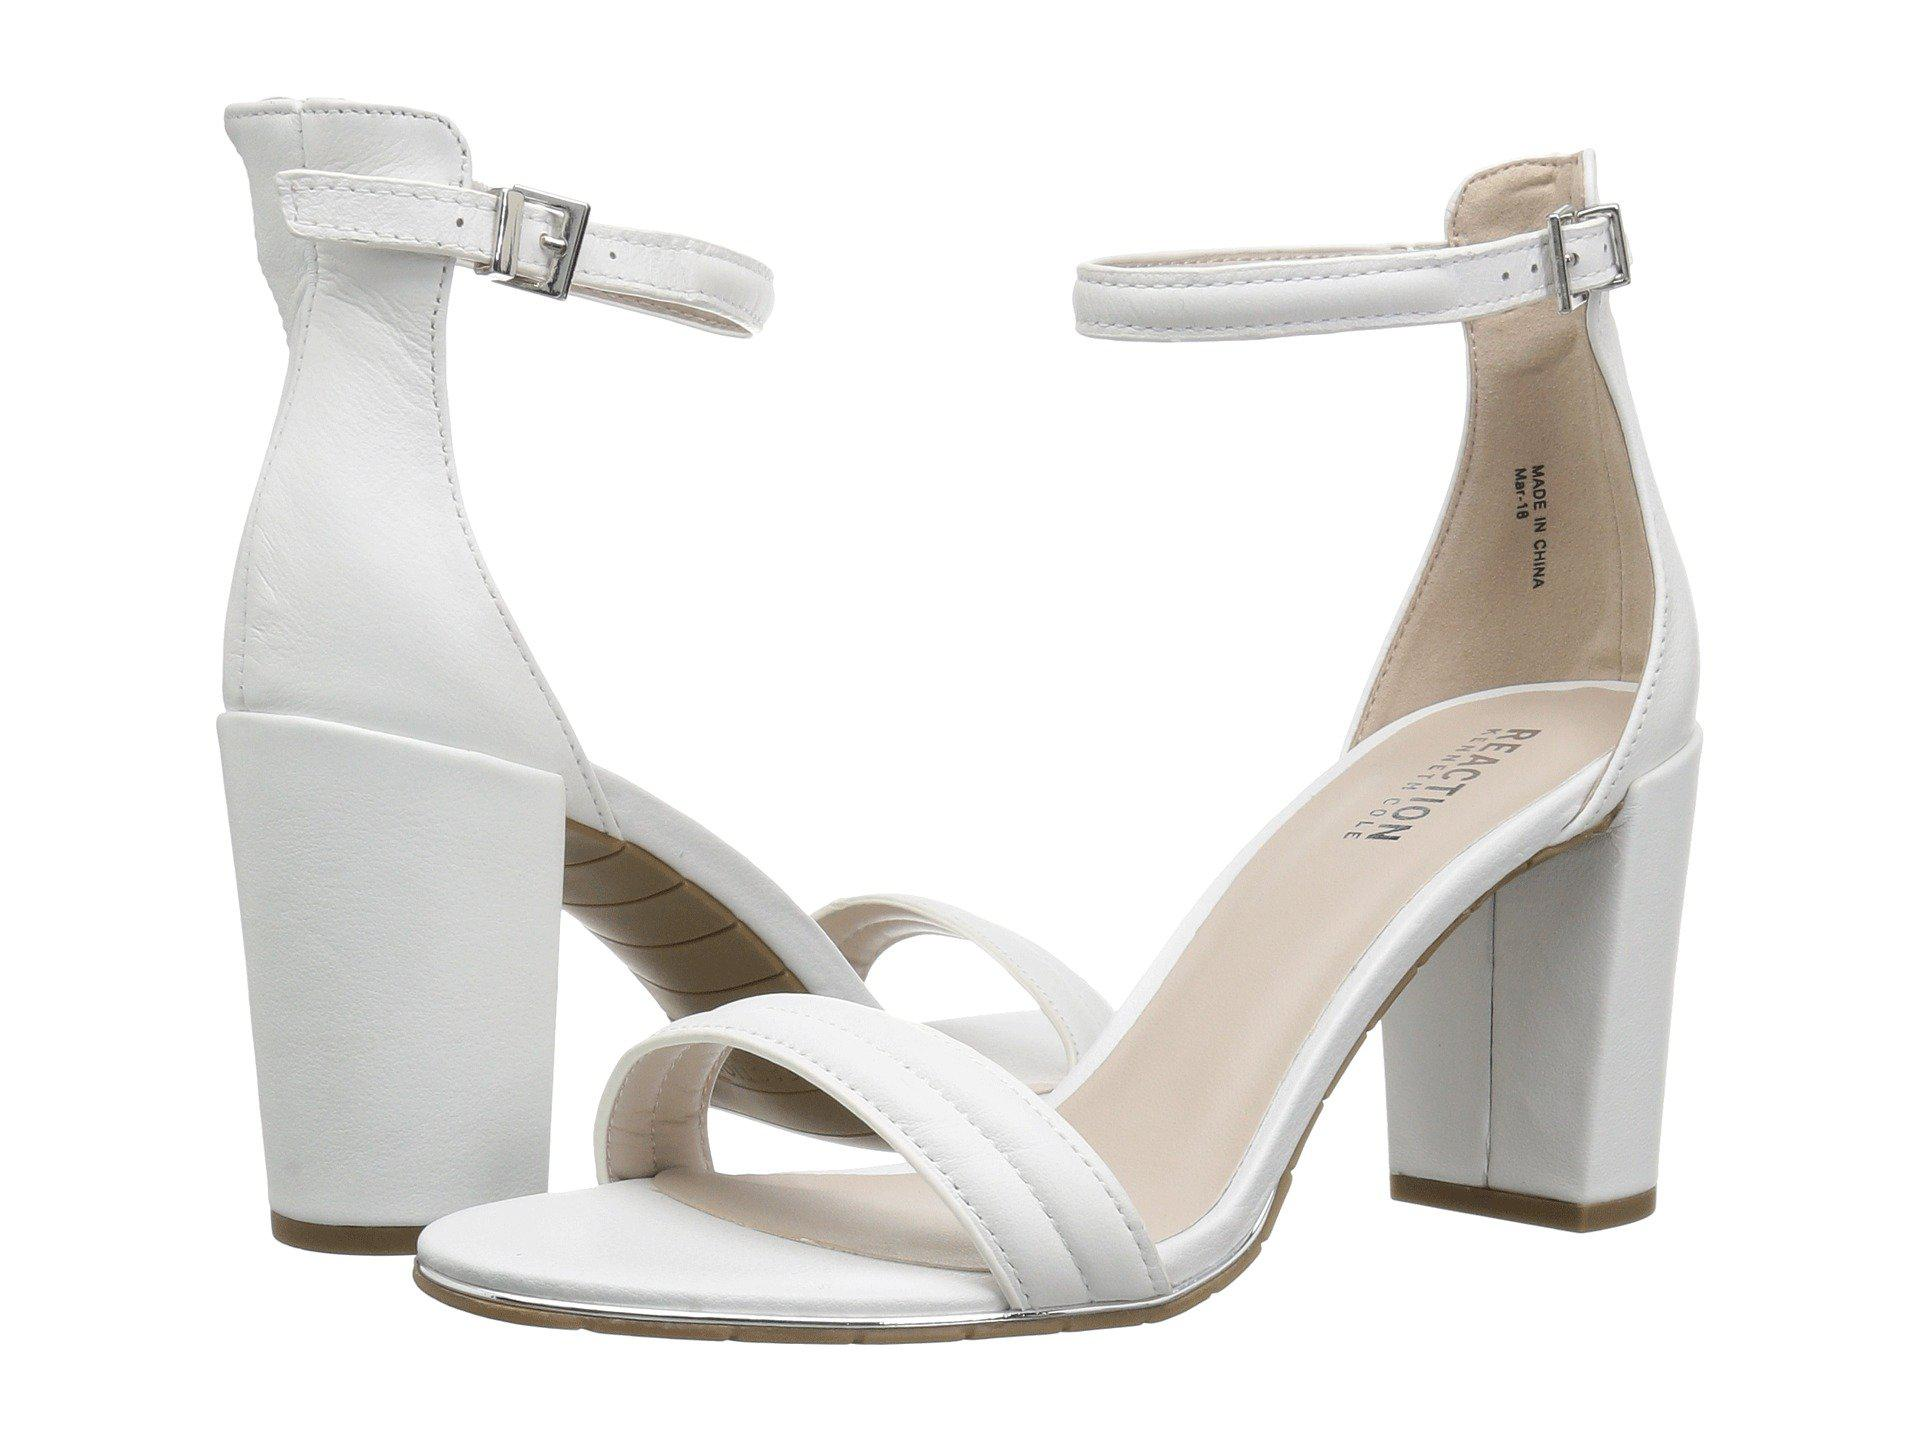 94ad8928711 Lyst - Kenneth Cole Reaction Lolita in White